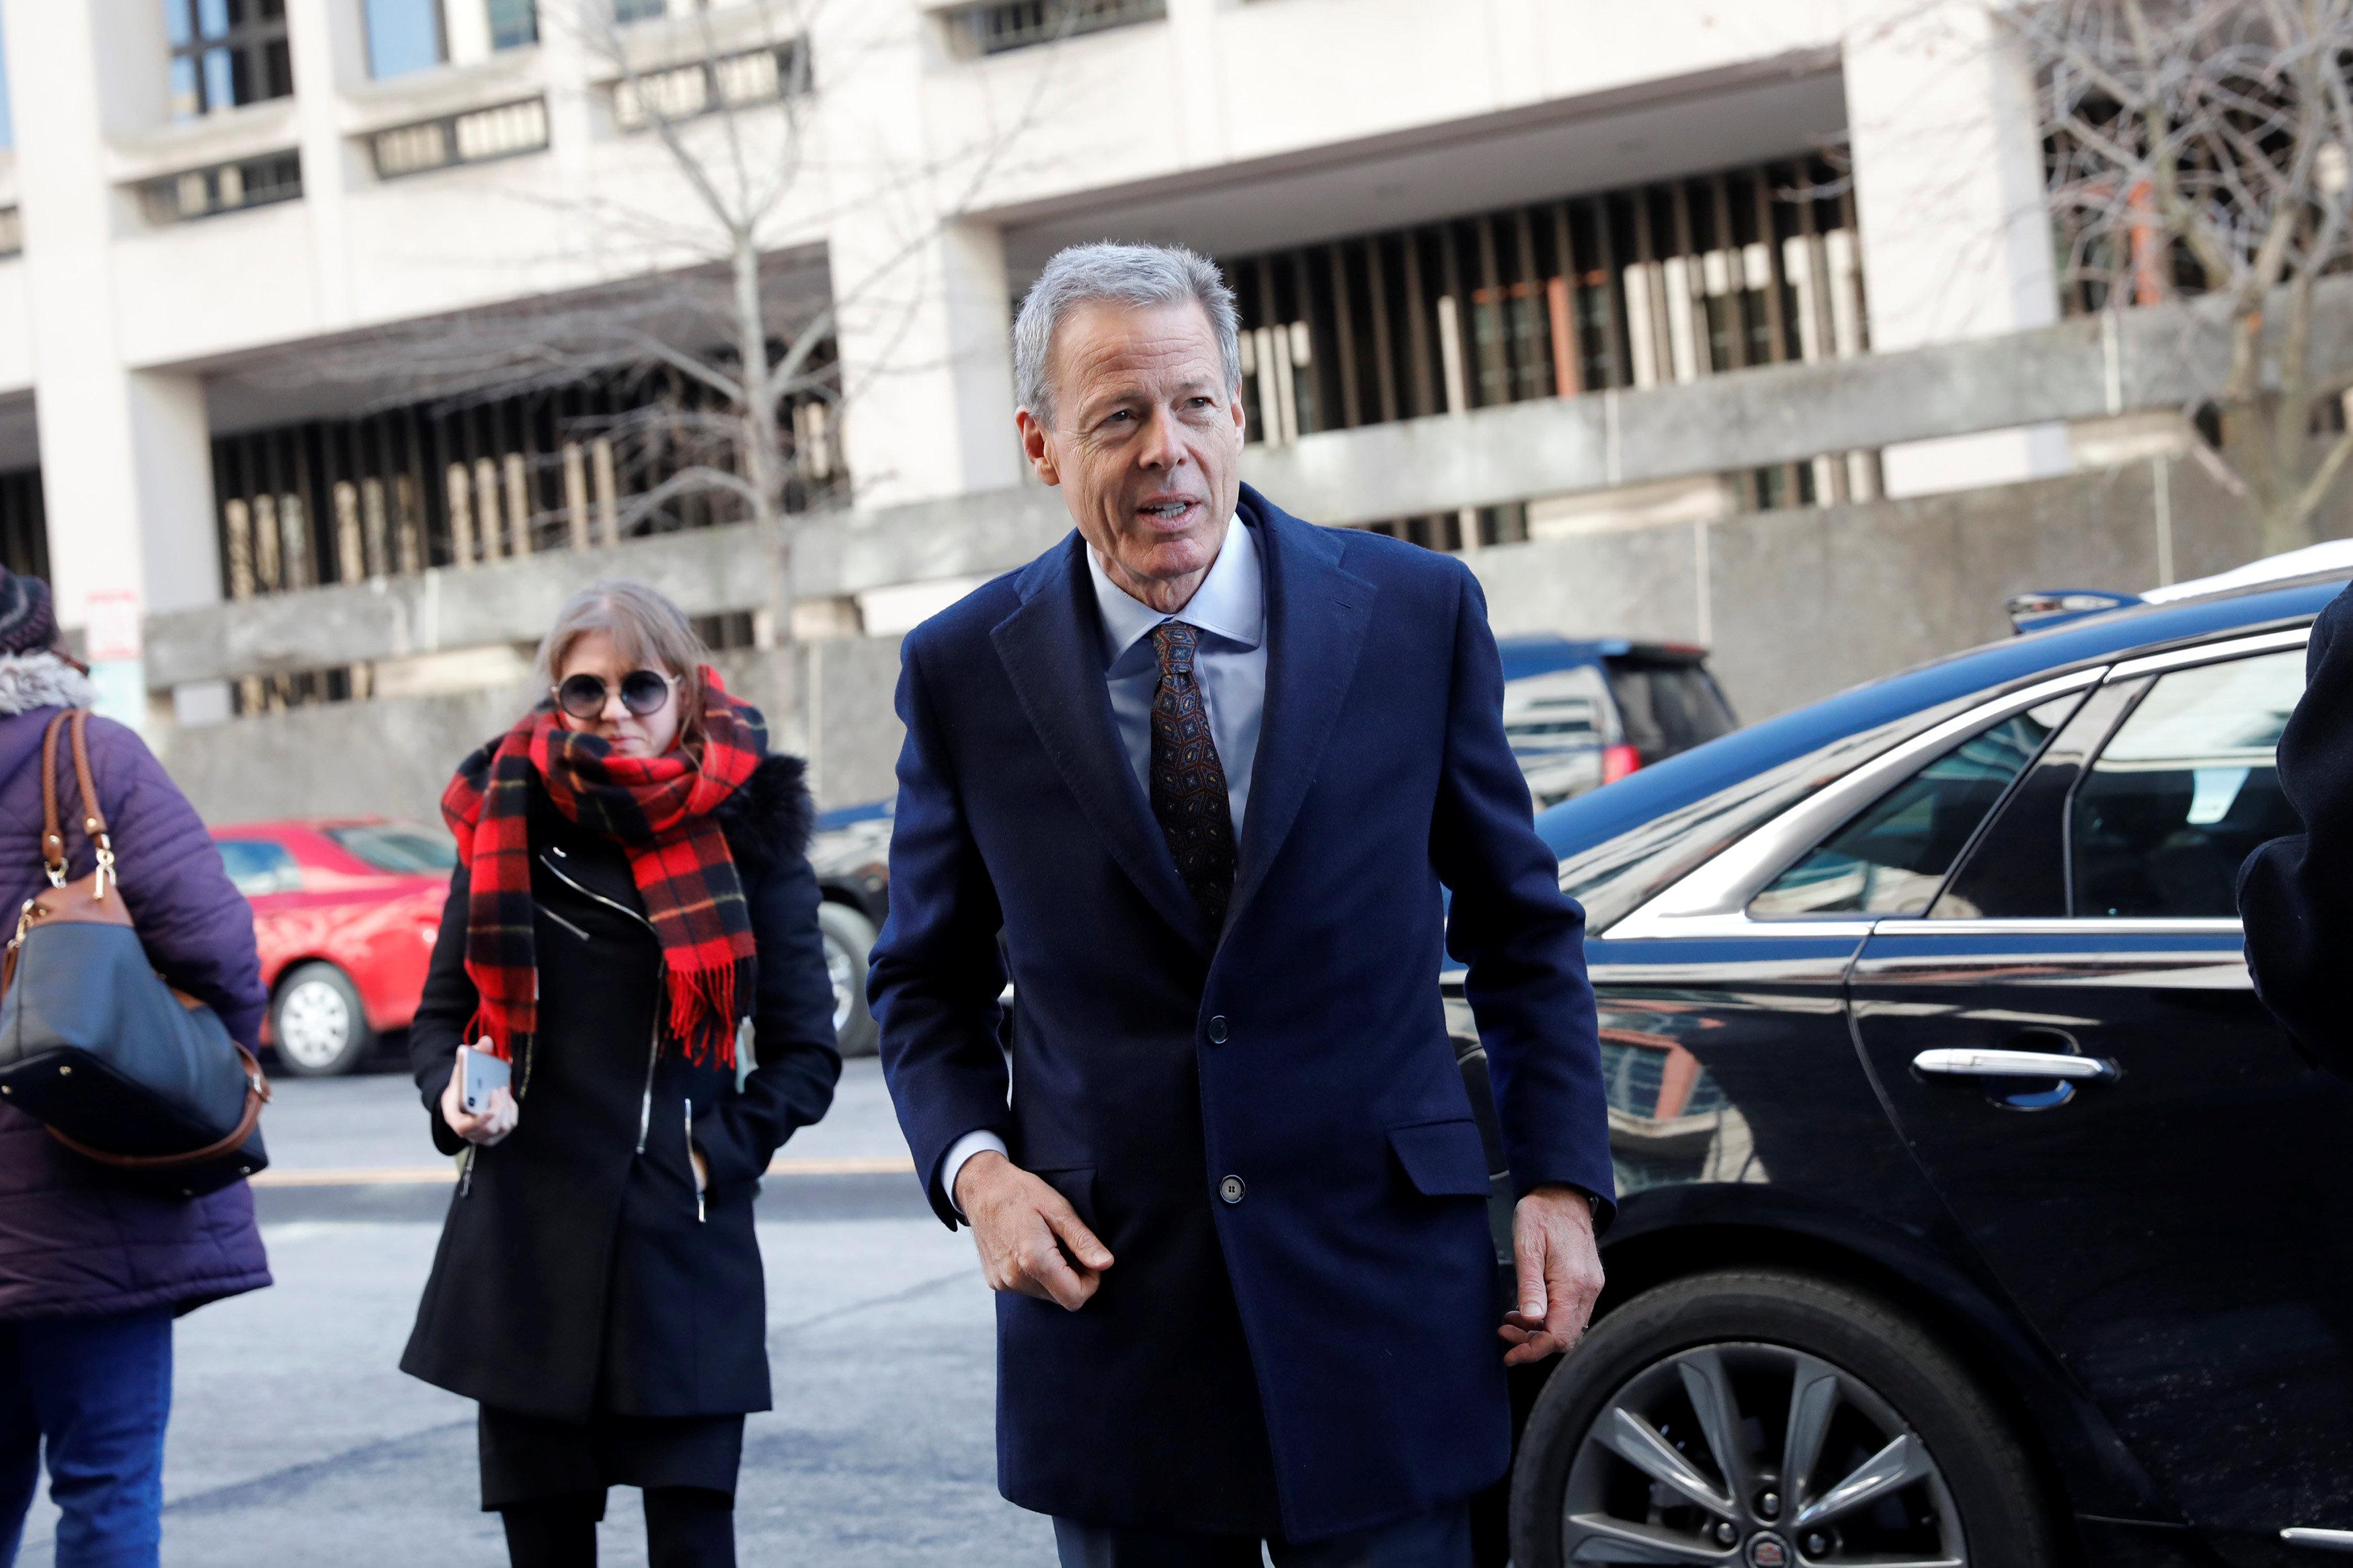 Time Warner CEO Jeff Bewkes arrives ahead of arguments in the trial to determine if AT&T's merger with Time Warner is legal under antitrust law at U.S. District Court in Washington, U.S., March 22, 2018. Aaron P. Bernstein